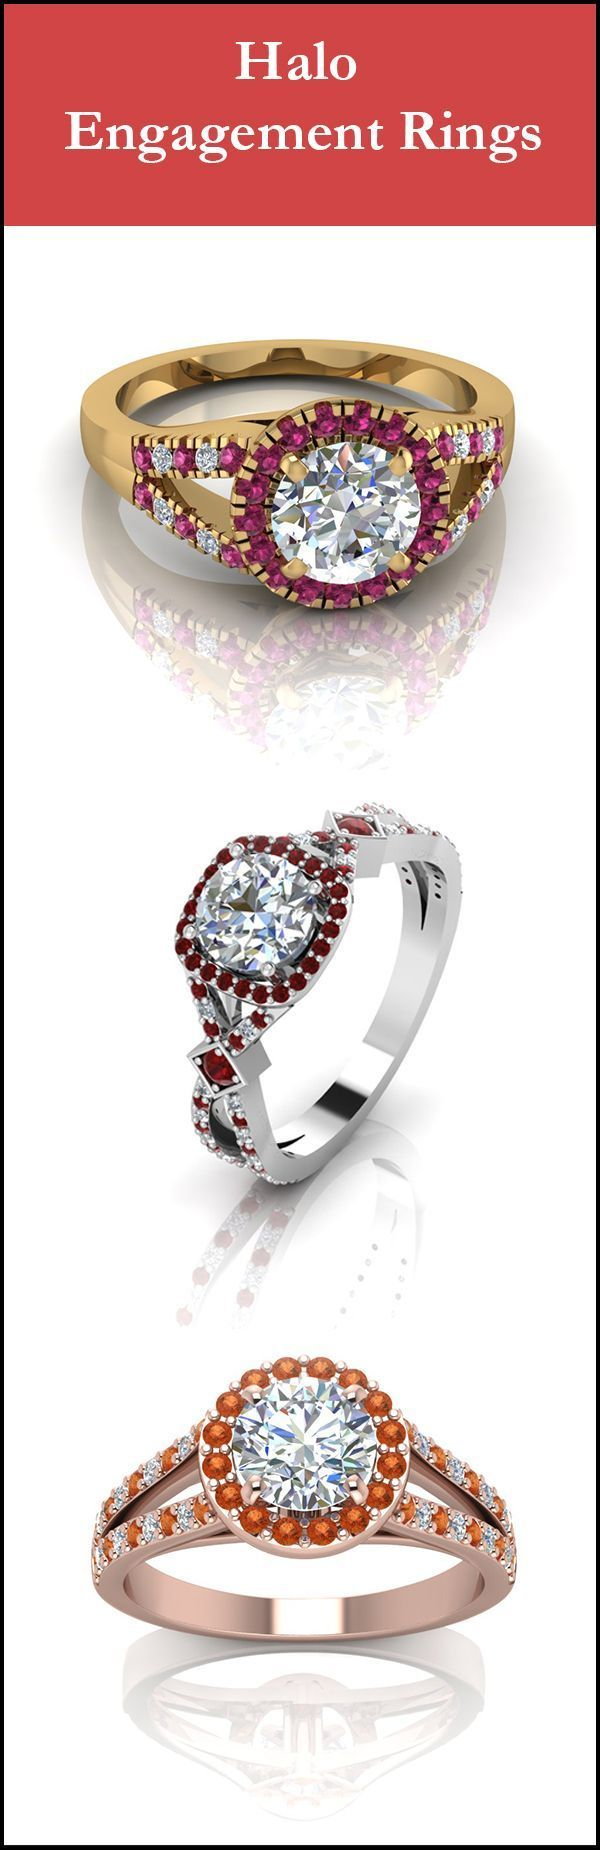 If you think these are beautiful halo engagement rings , wait till you see the others #halorings